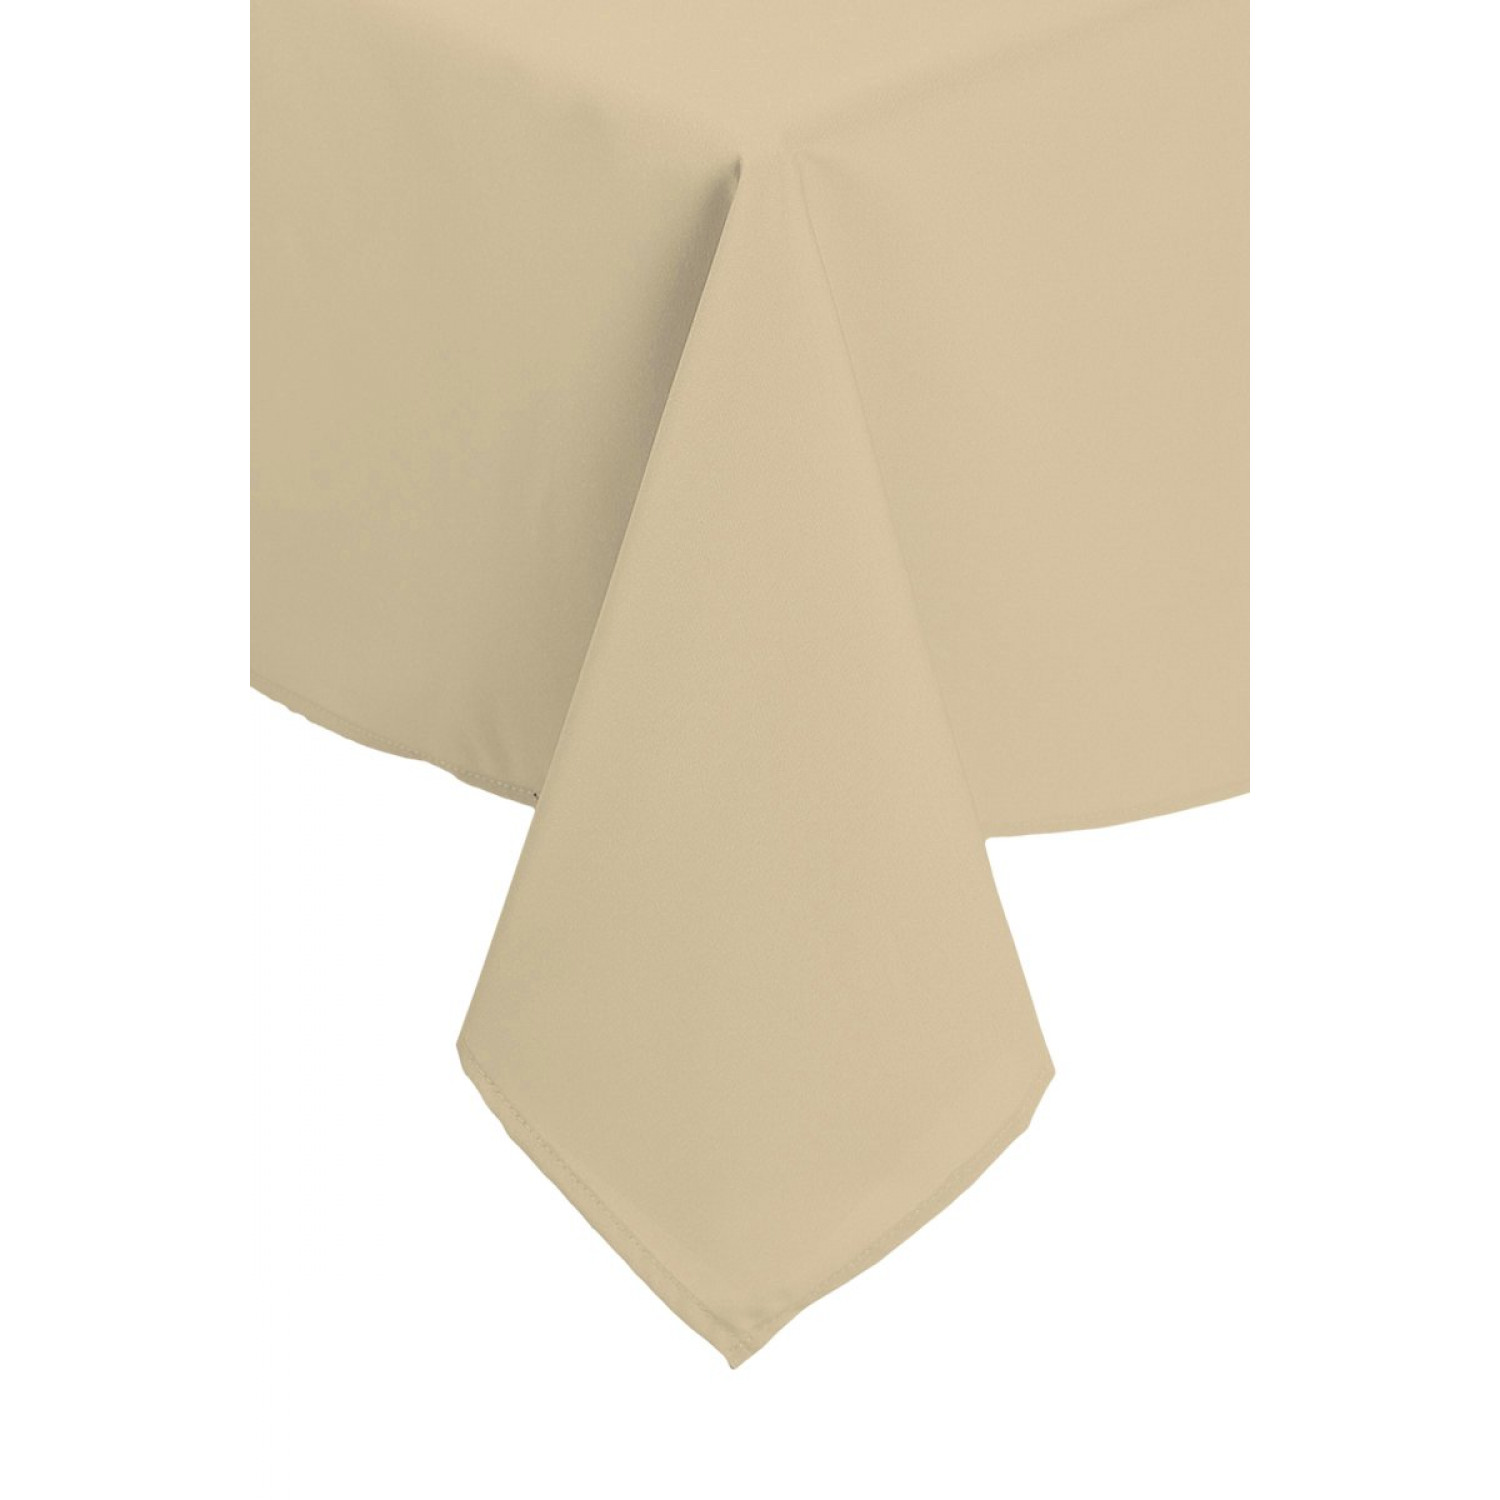 Nappe rectangulaire - Anti tâches - 140x240cm - Beige - Polyester